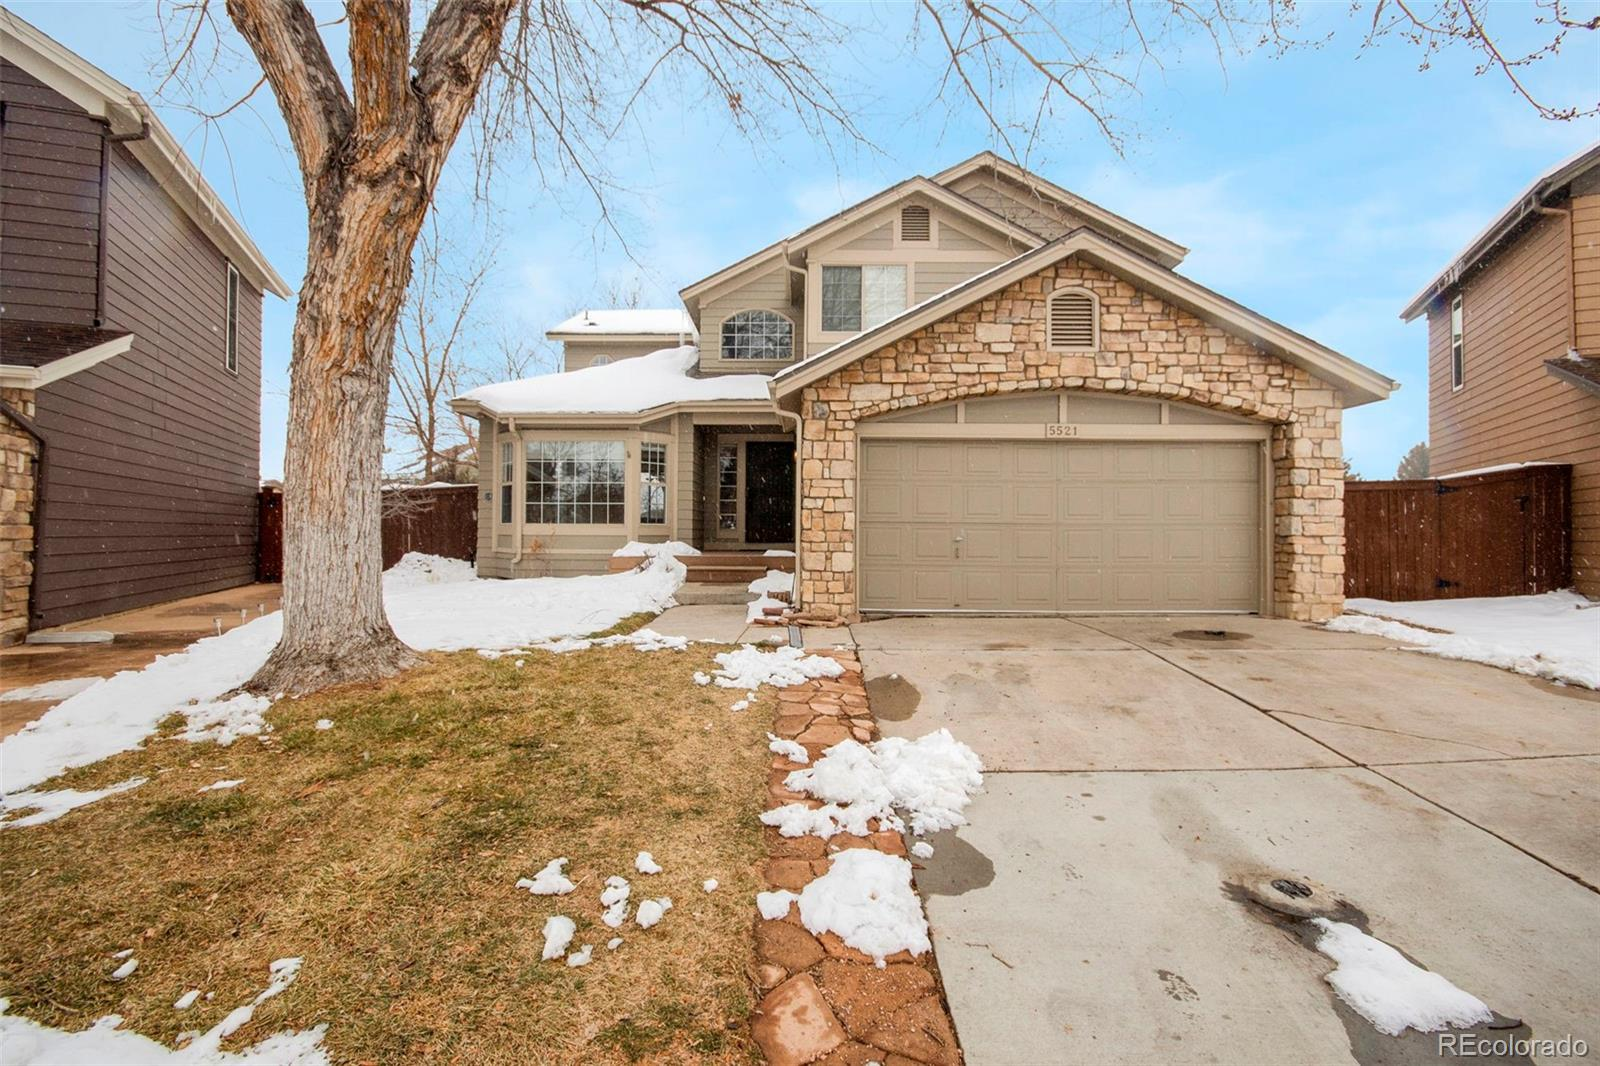 MLS# 2528166 - 1 - 5521 Wickerdale Place, Highlands Ranch, CO 80130